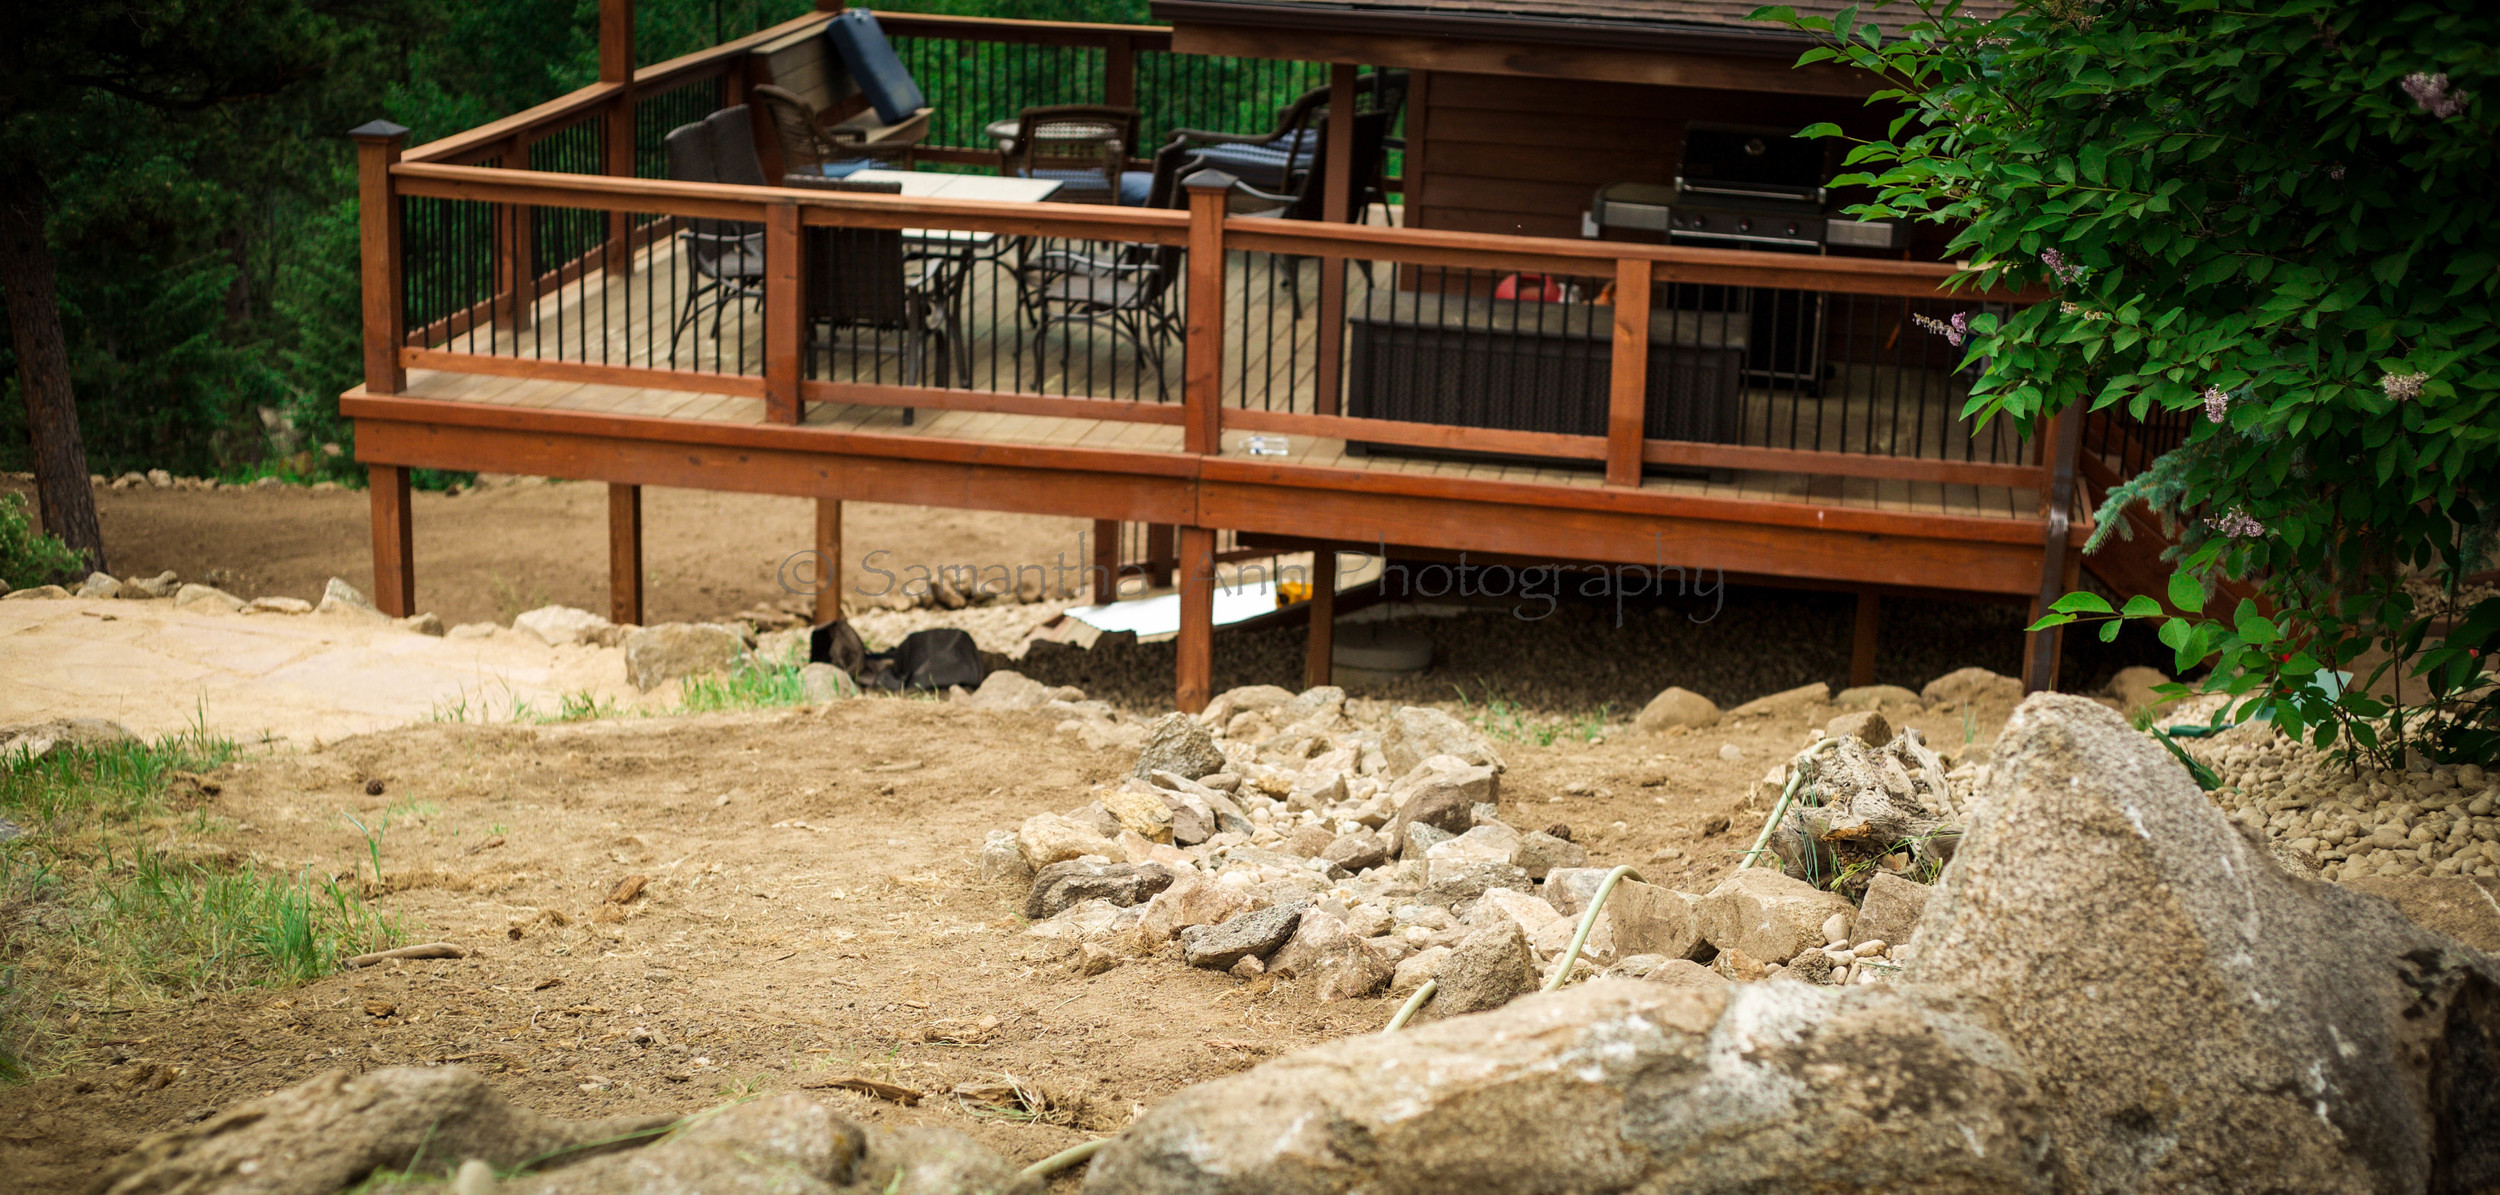 Looking down towards the deck and patio for future hot tub.